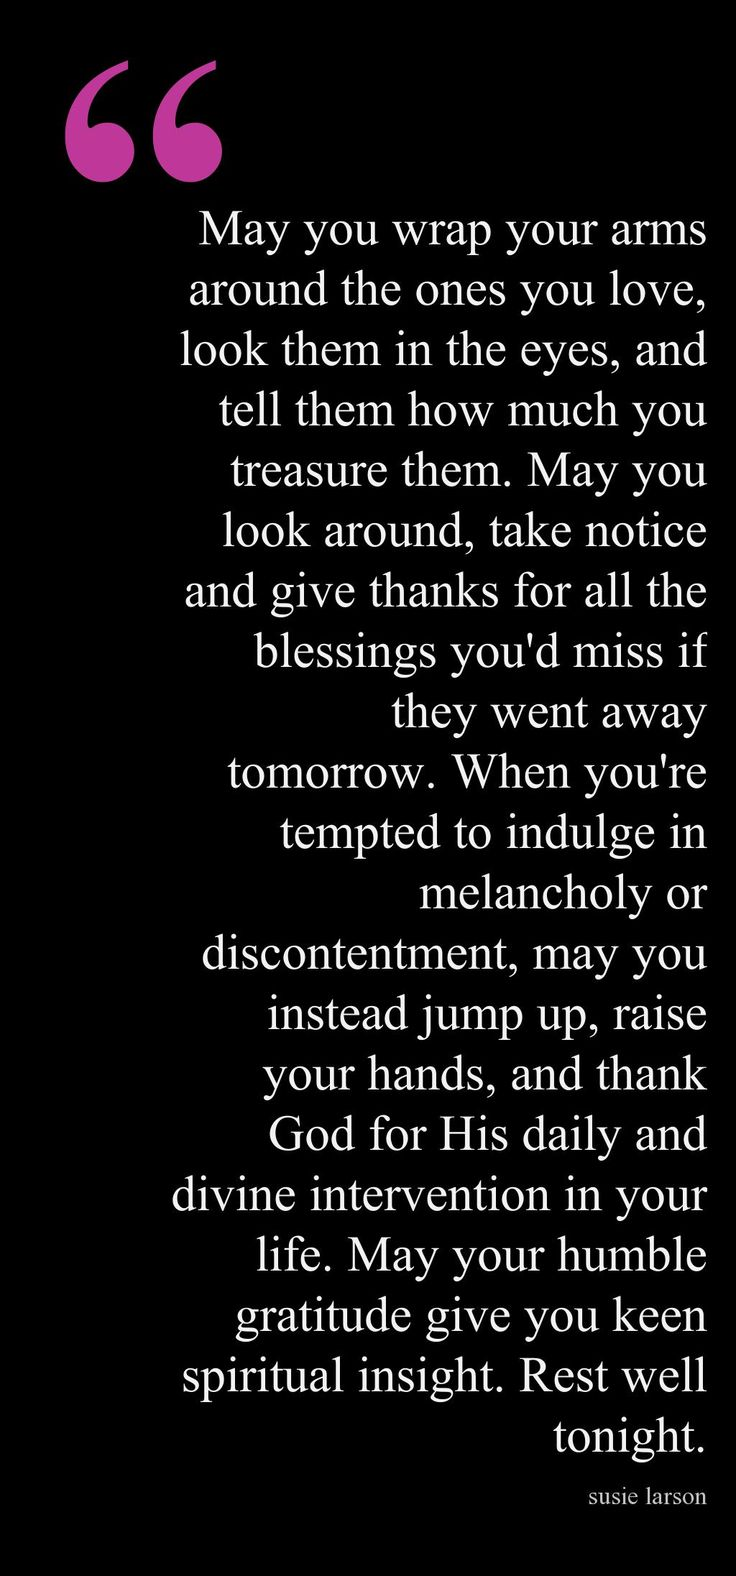 End of Day Blessing